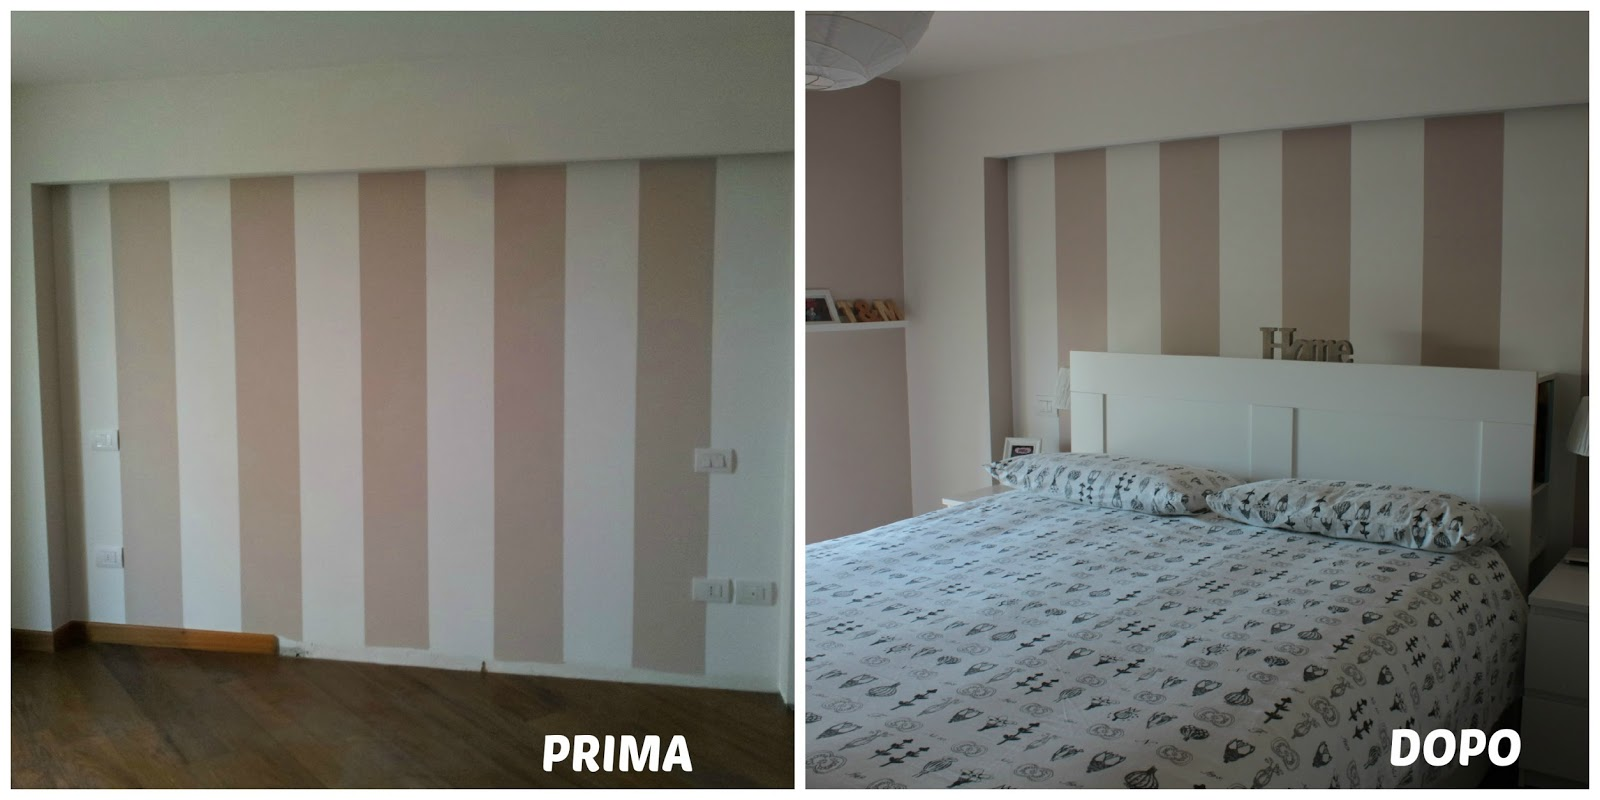 Best Camera Da Letto Pareti Colorate Gallery - Idee Arredamento Casa ...